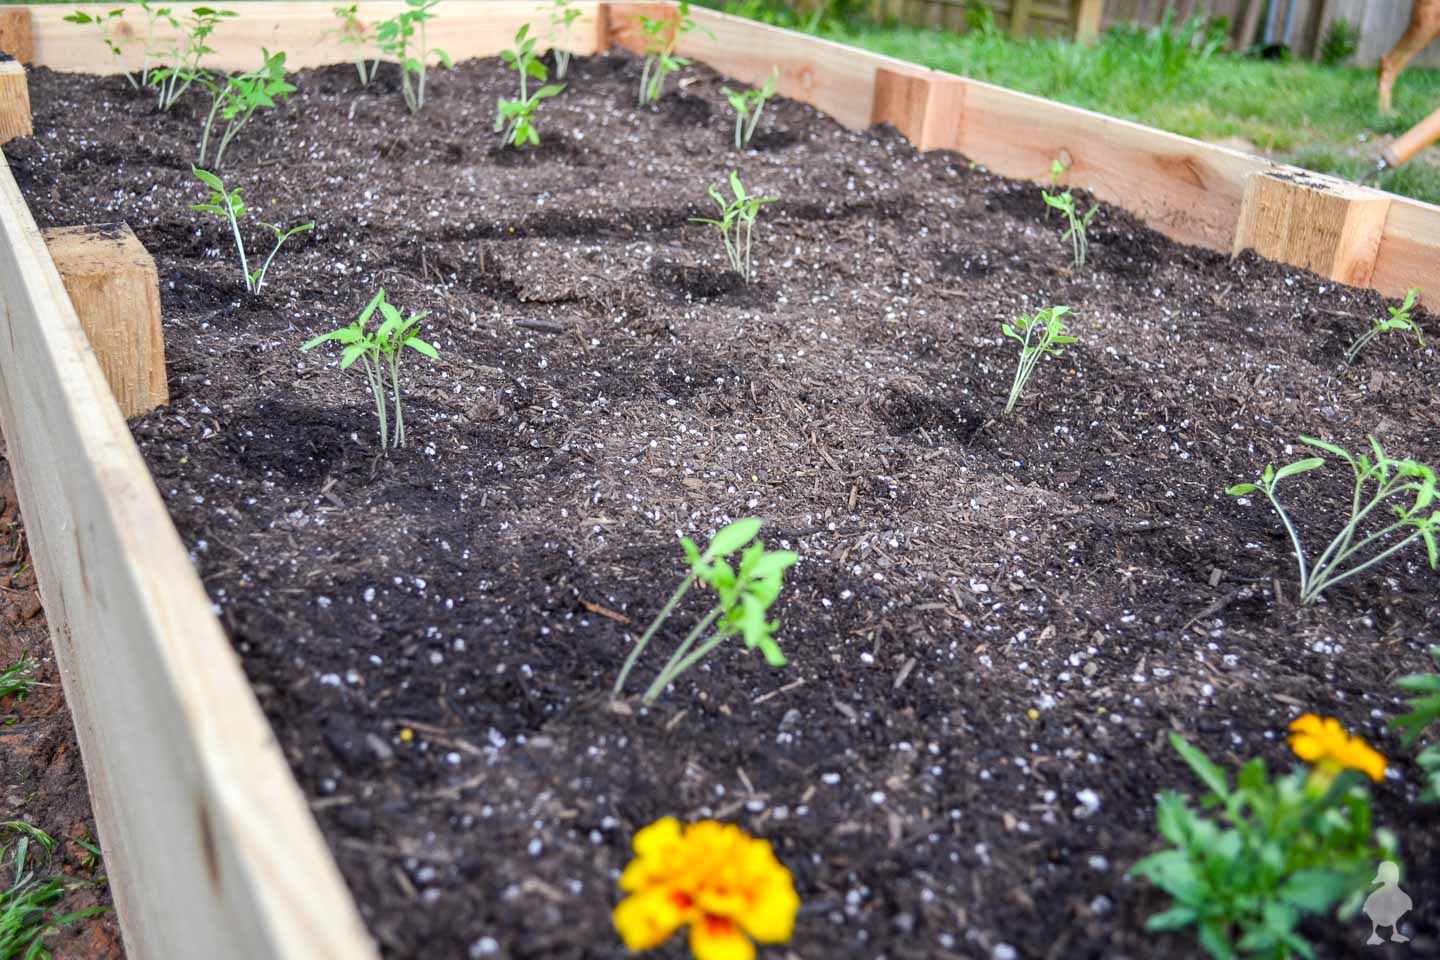 seedlings planted in a raised garden bed